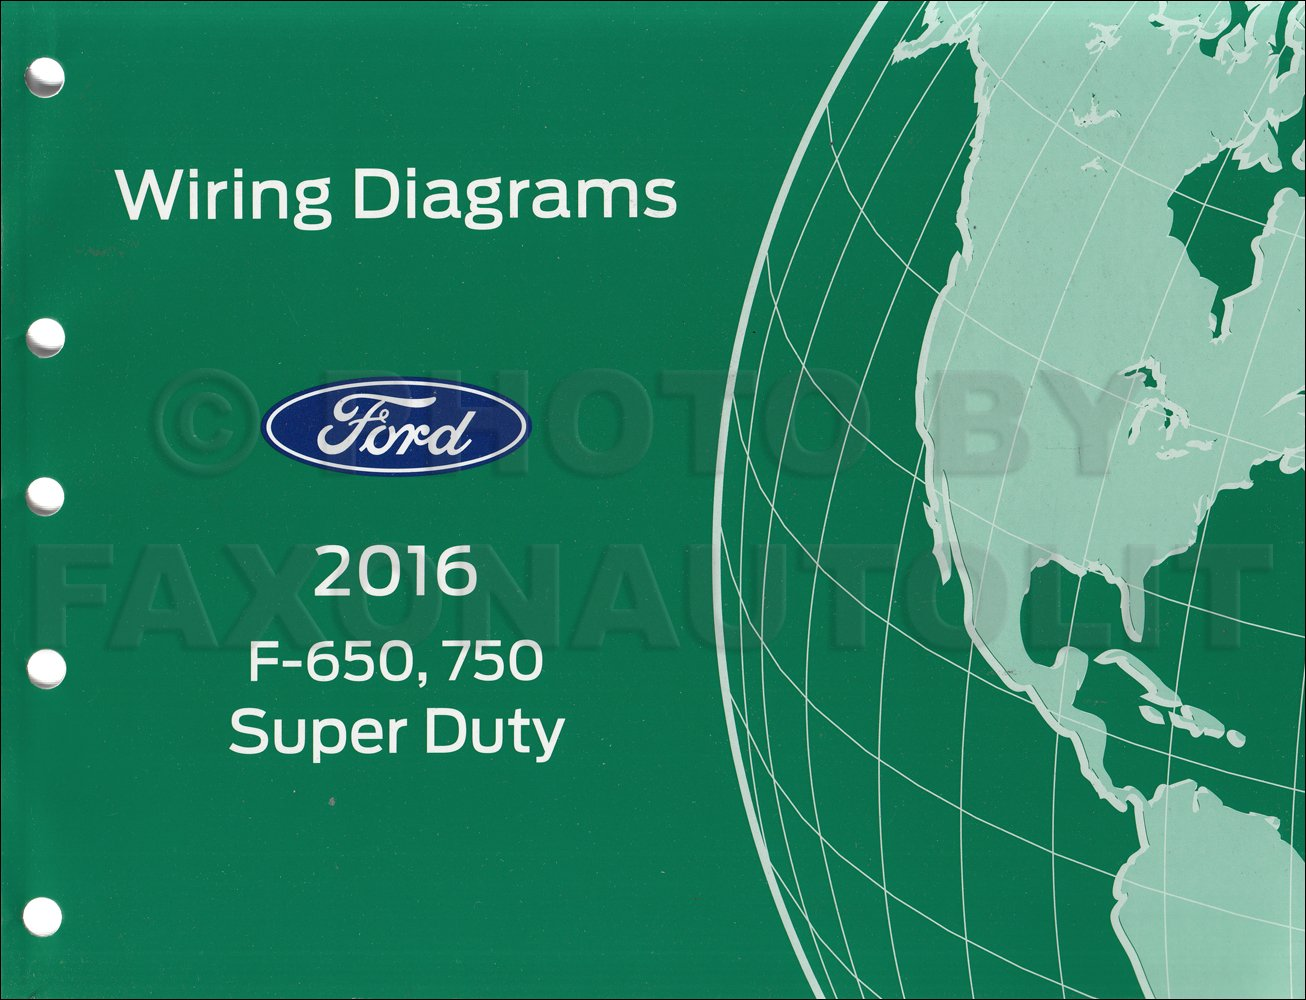 2016 F650 Wiring Diagram House Symbols 2006 Ford Fuse Box Layout F 650 And 750 Super Duty Truck Manual Rh Amazon Com 2000